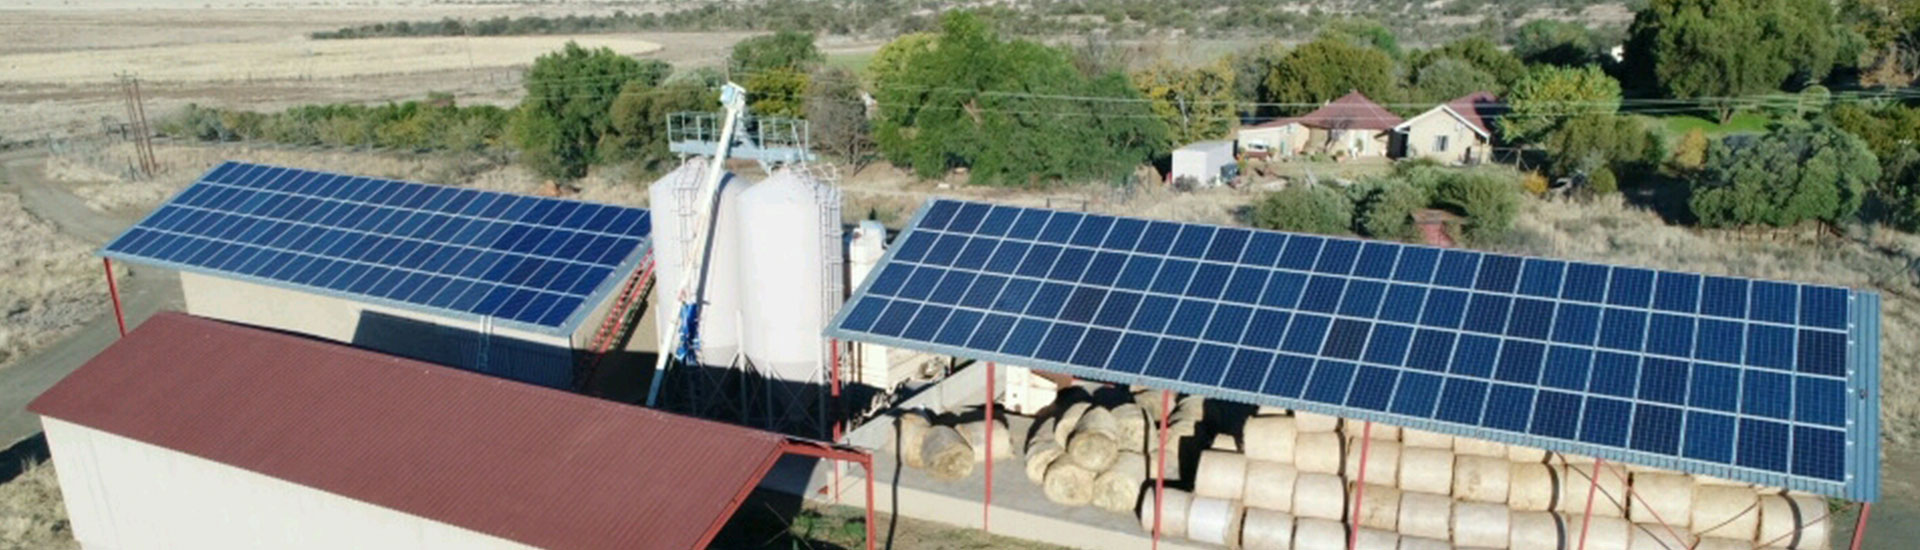 Eco Trades: Solar Power Systems for Farms (Project: Glen, Bloemfontein)